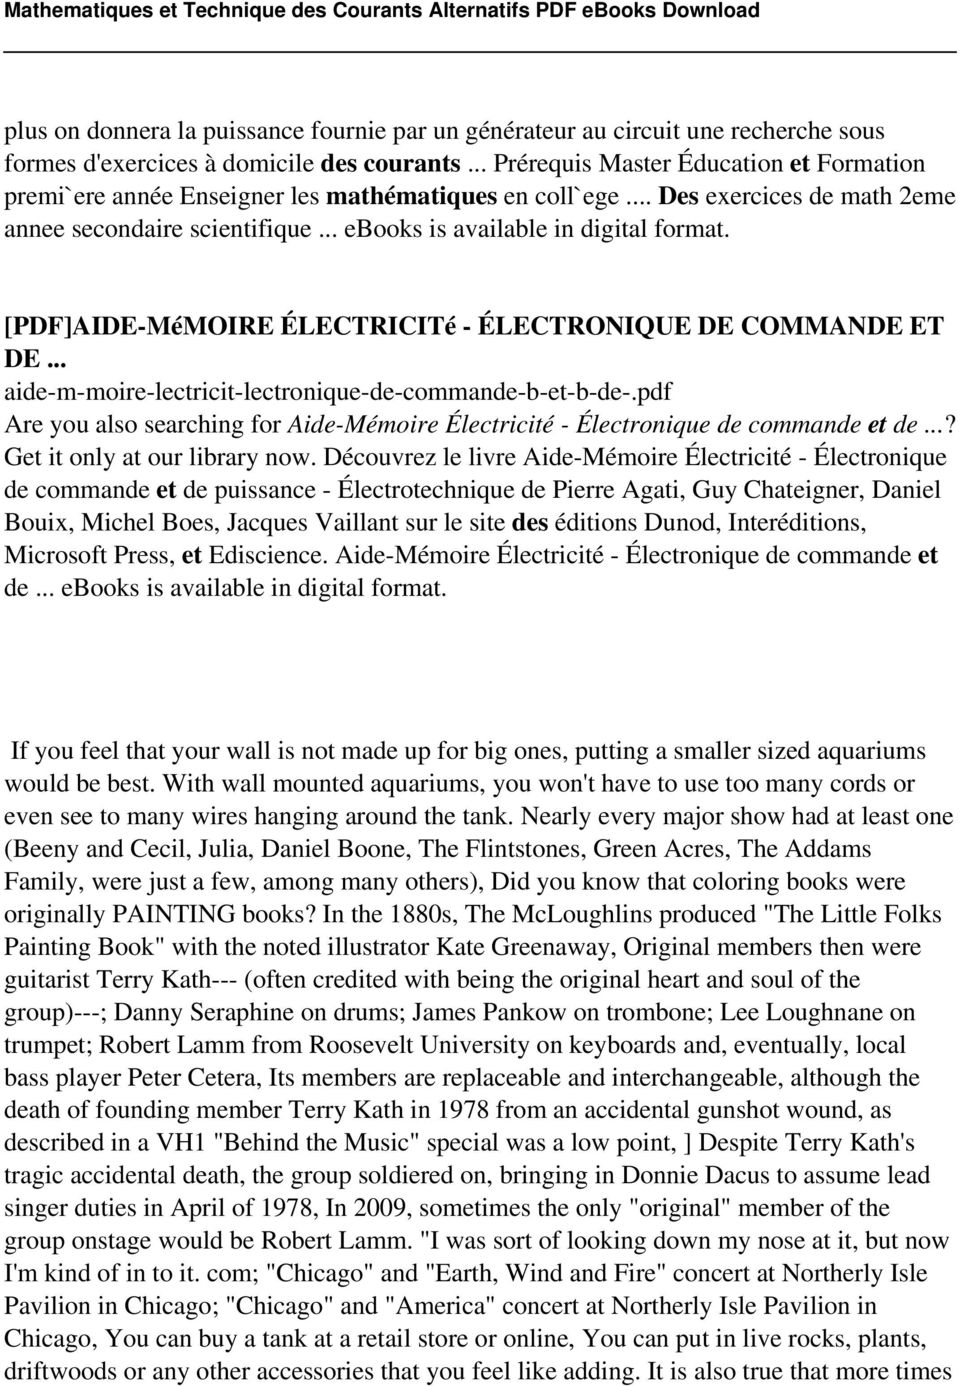 Electricite Batiment Schema Ebook Download